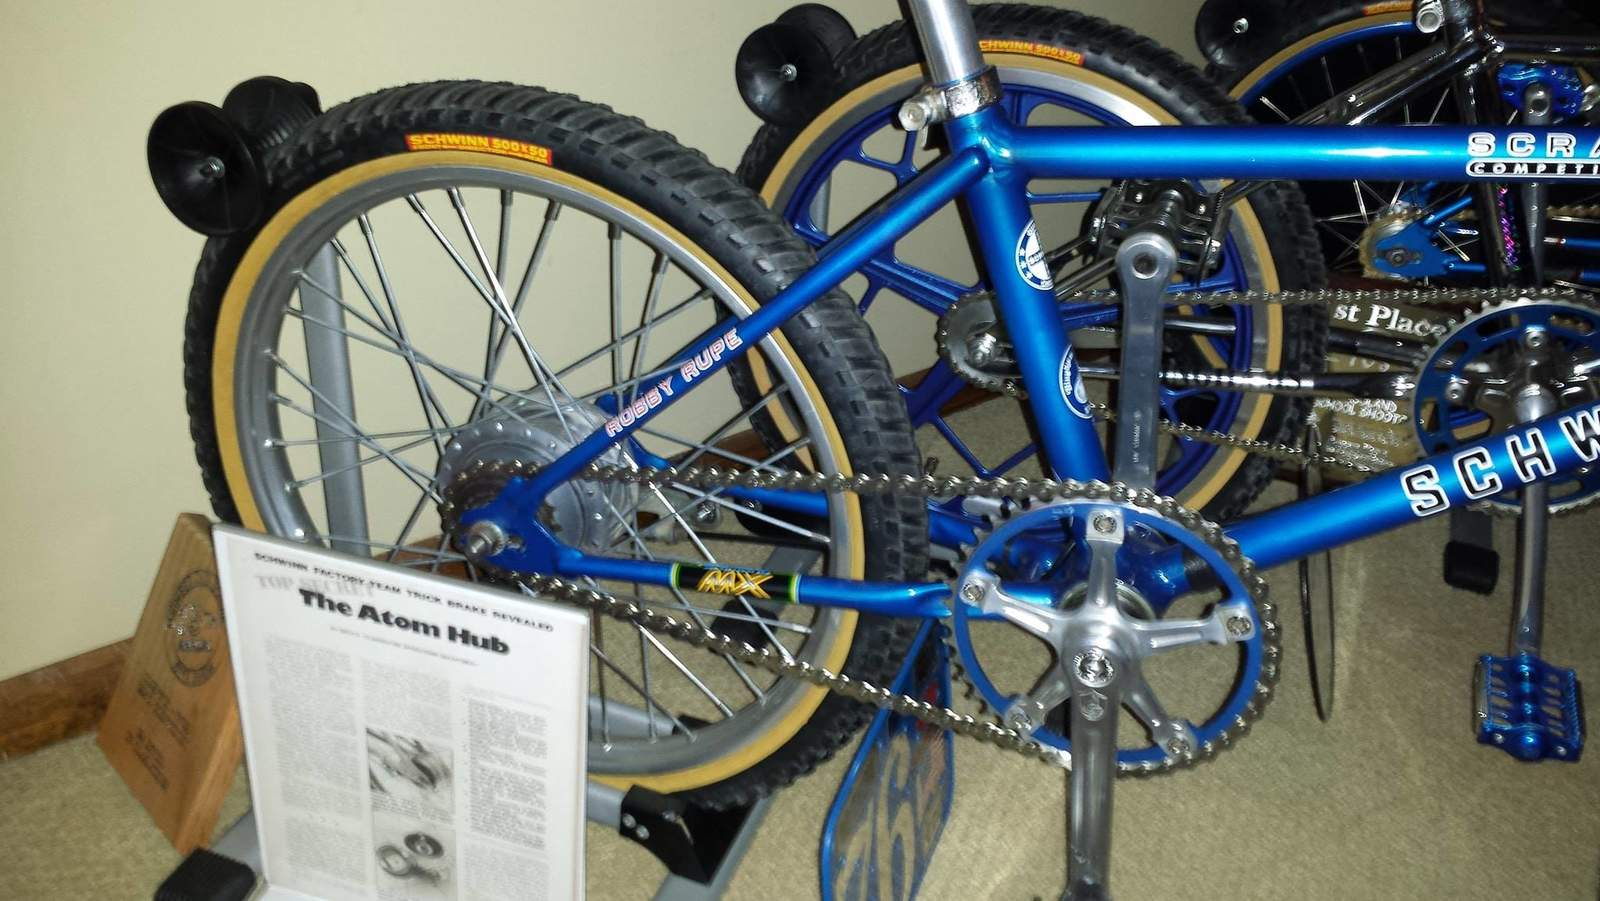 https://s3.amazonaws.com/uploads.bmxmuseum.com/user-images/214141/58581927_2297305603622803_6518324603595522048_o5ec5197797.jpg